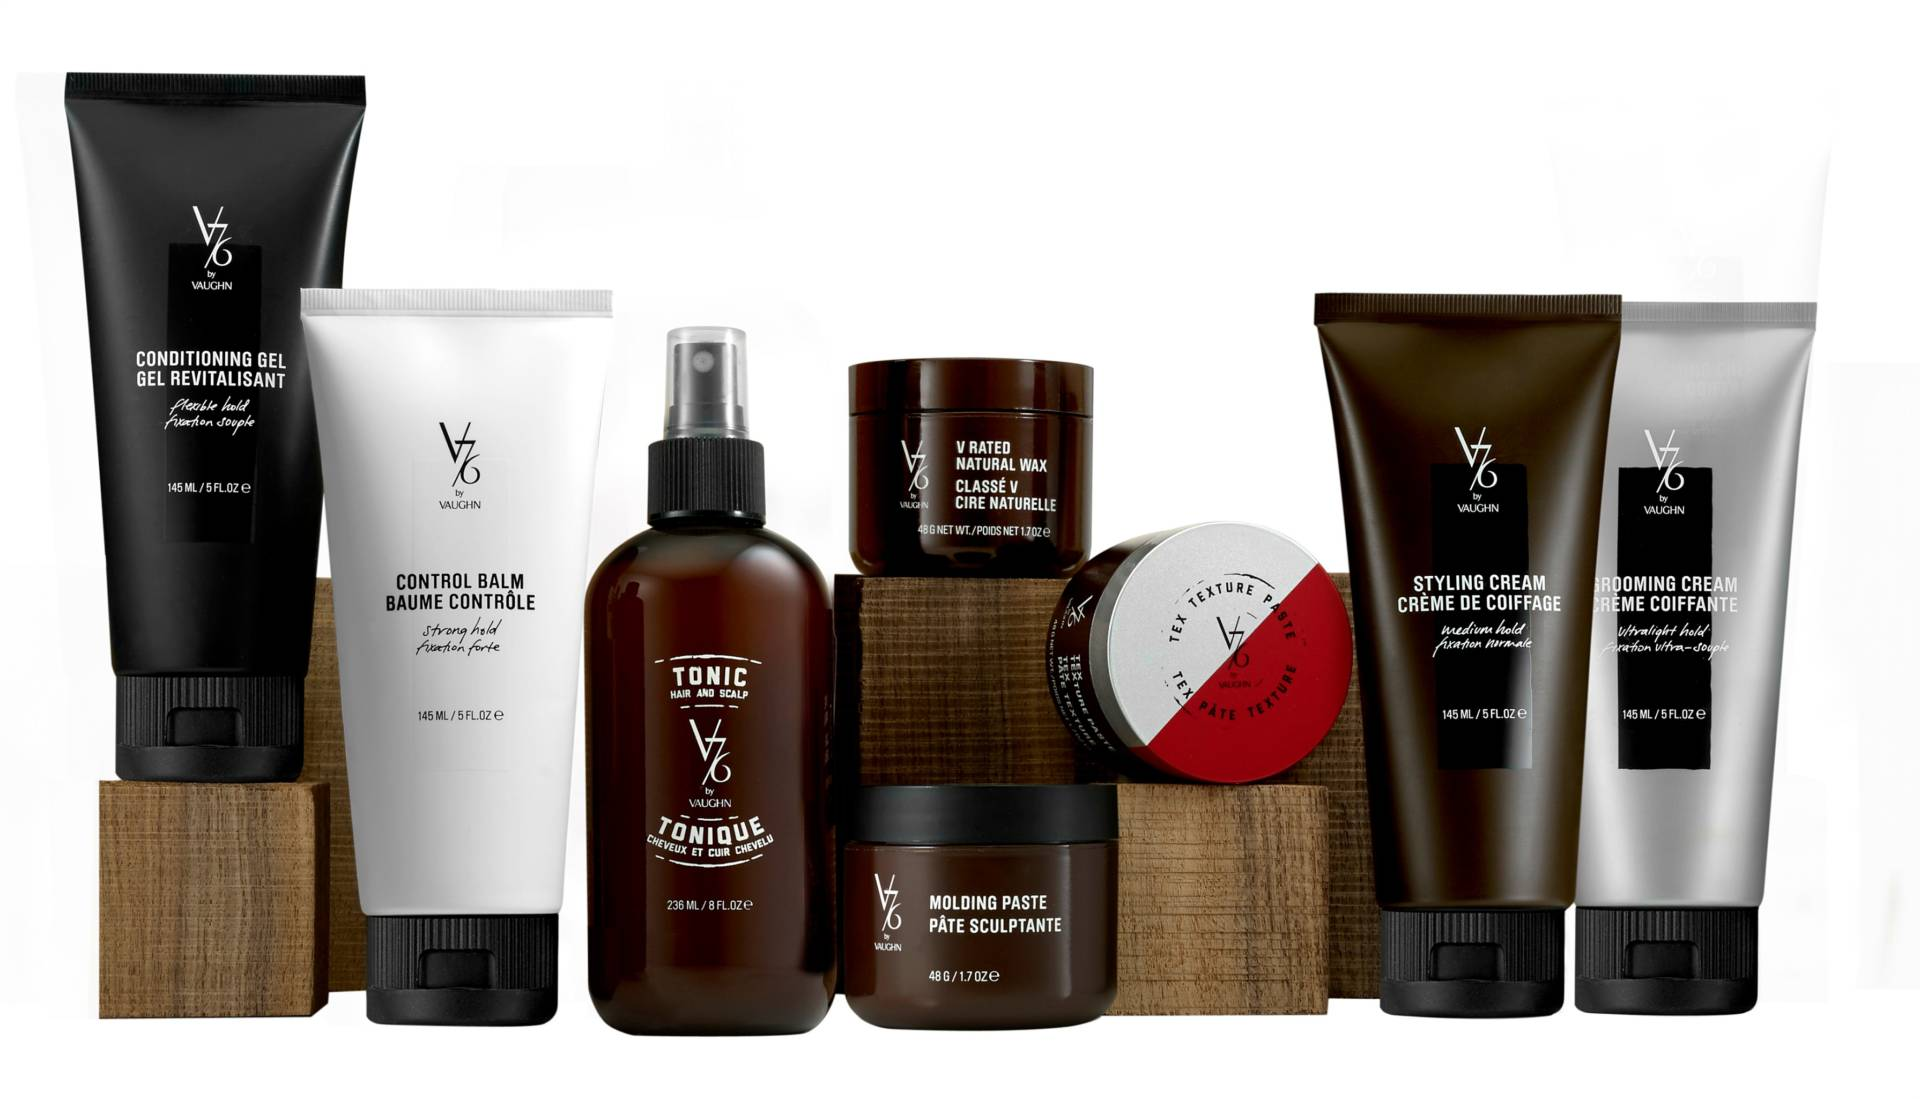 V76 by vaughn grooming fathers day gift guide inhautepursuit